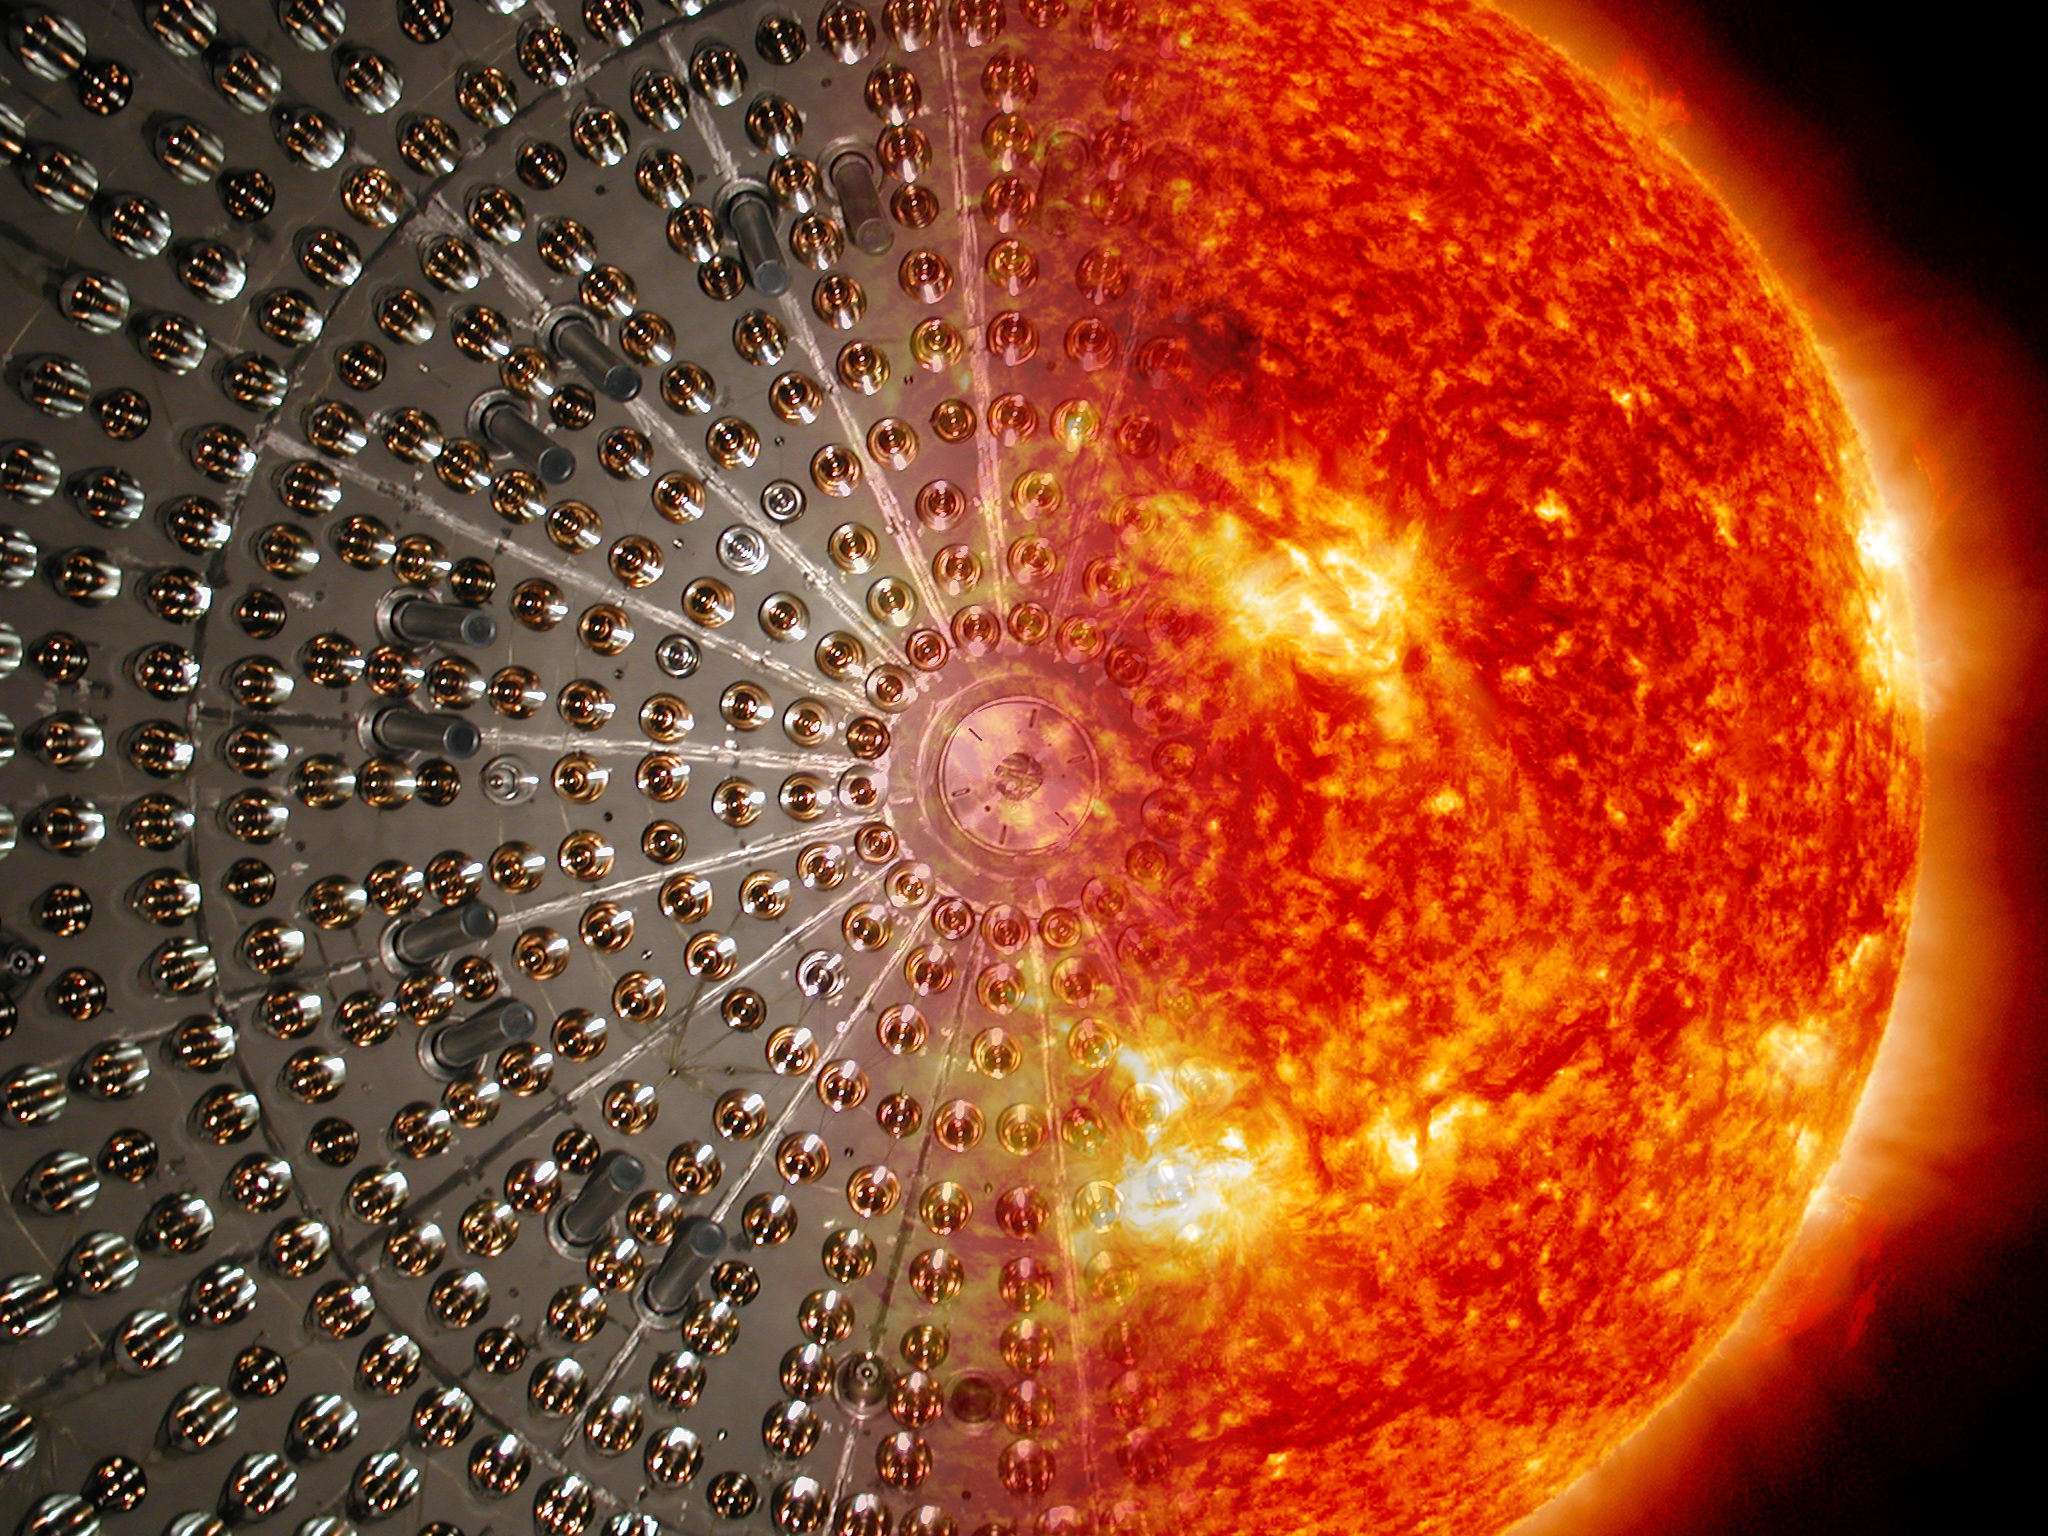 Scientists make major breakthrough in finding out why the Sun shines - The Independent